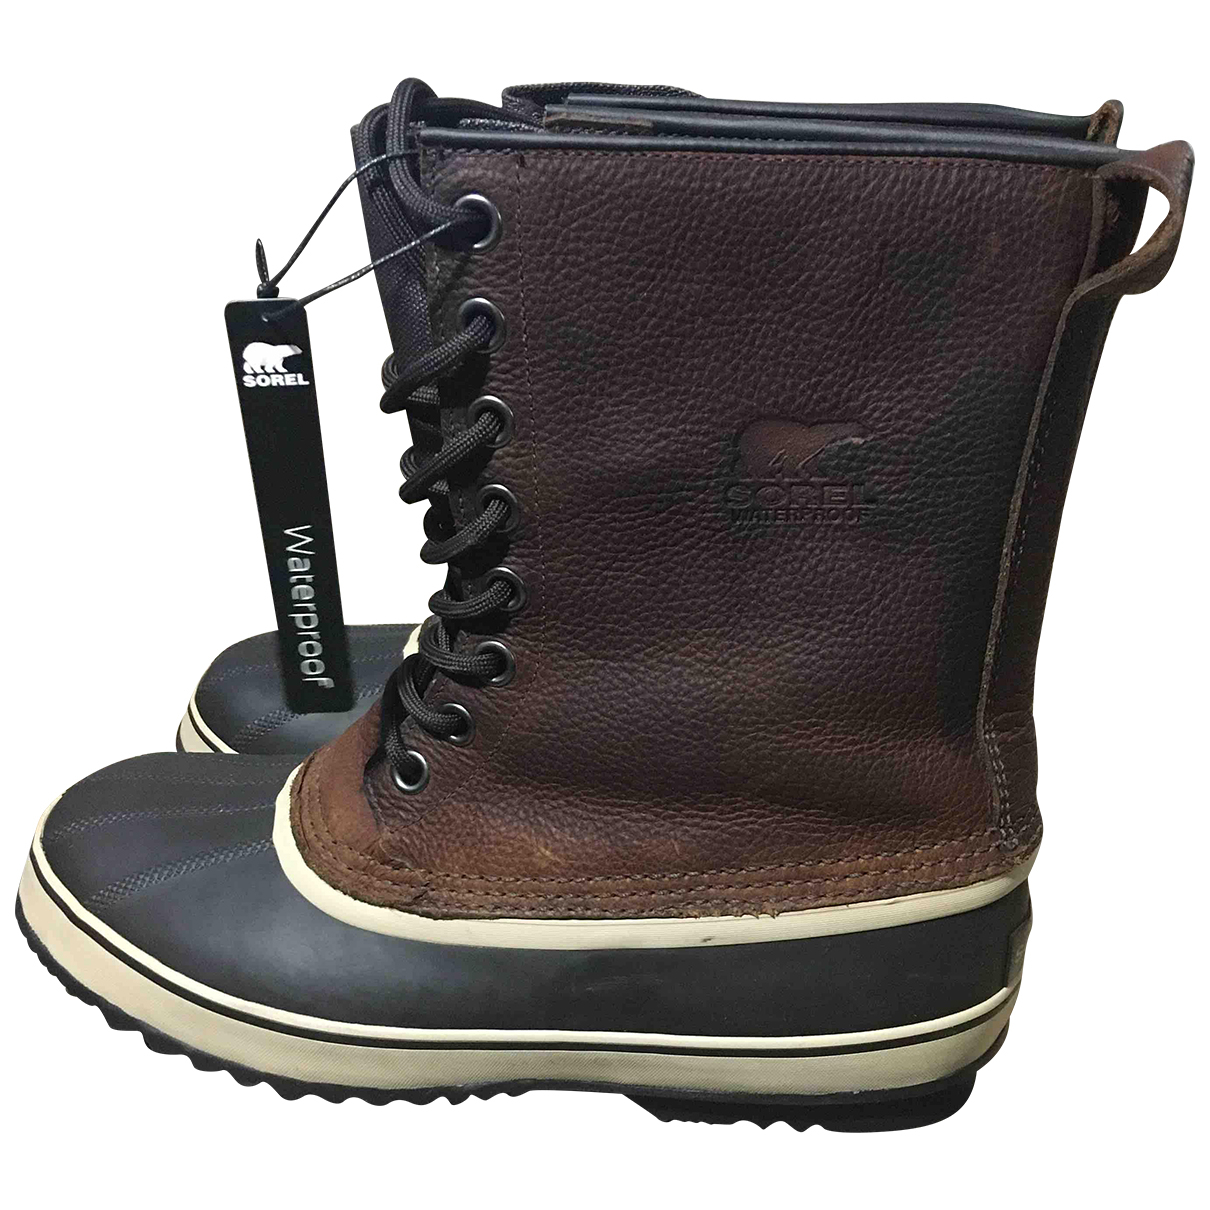 Sorel N Brown Leather Boots for Men 46 EU